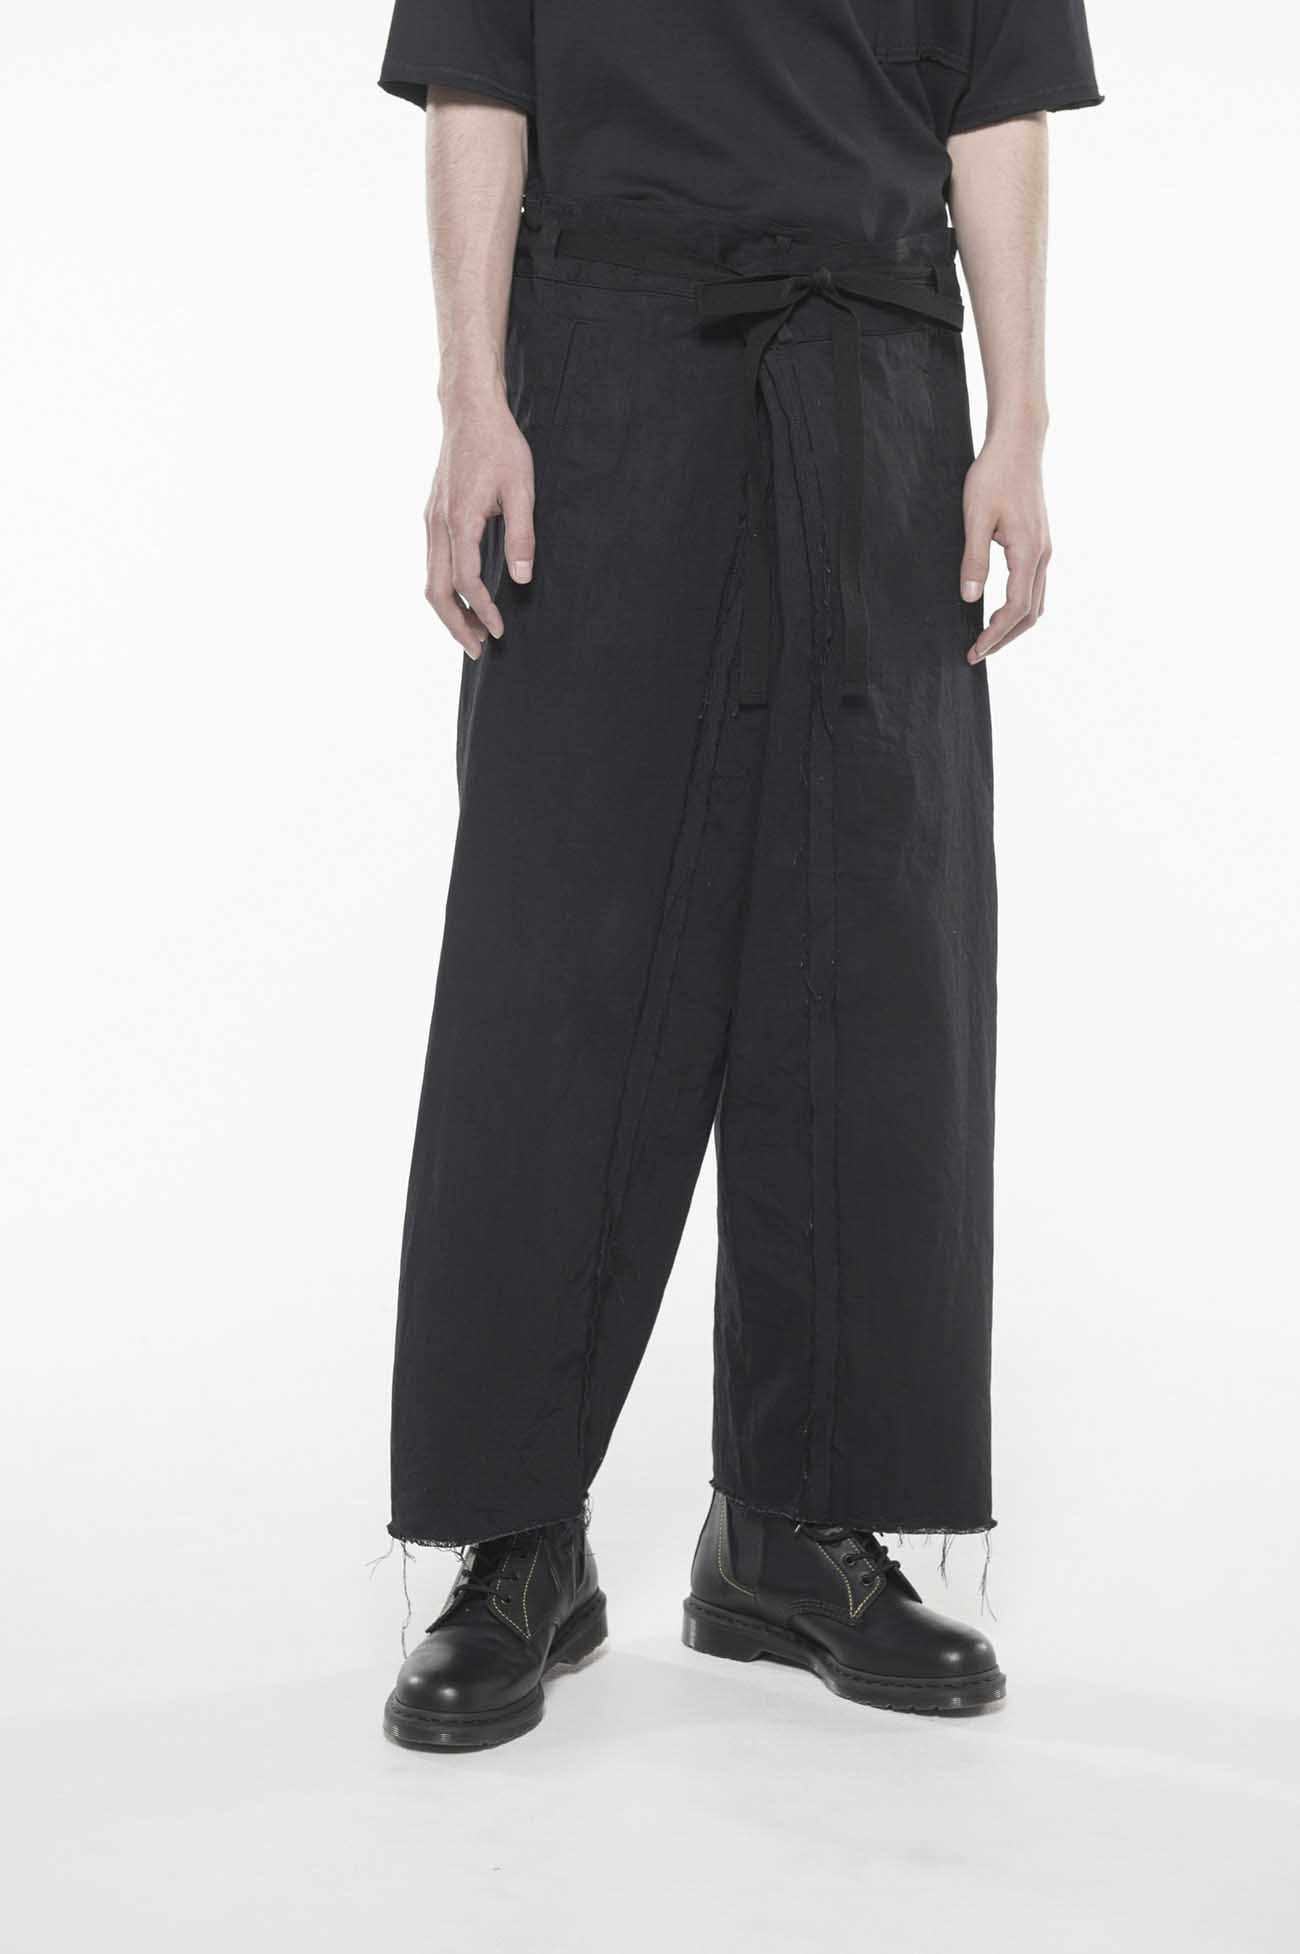 10 oz Denim Waist Fold Wide Pants